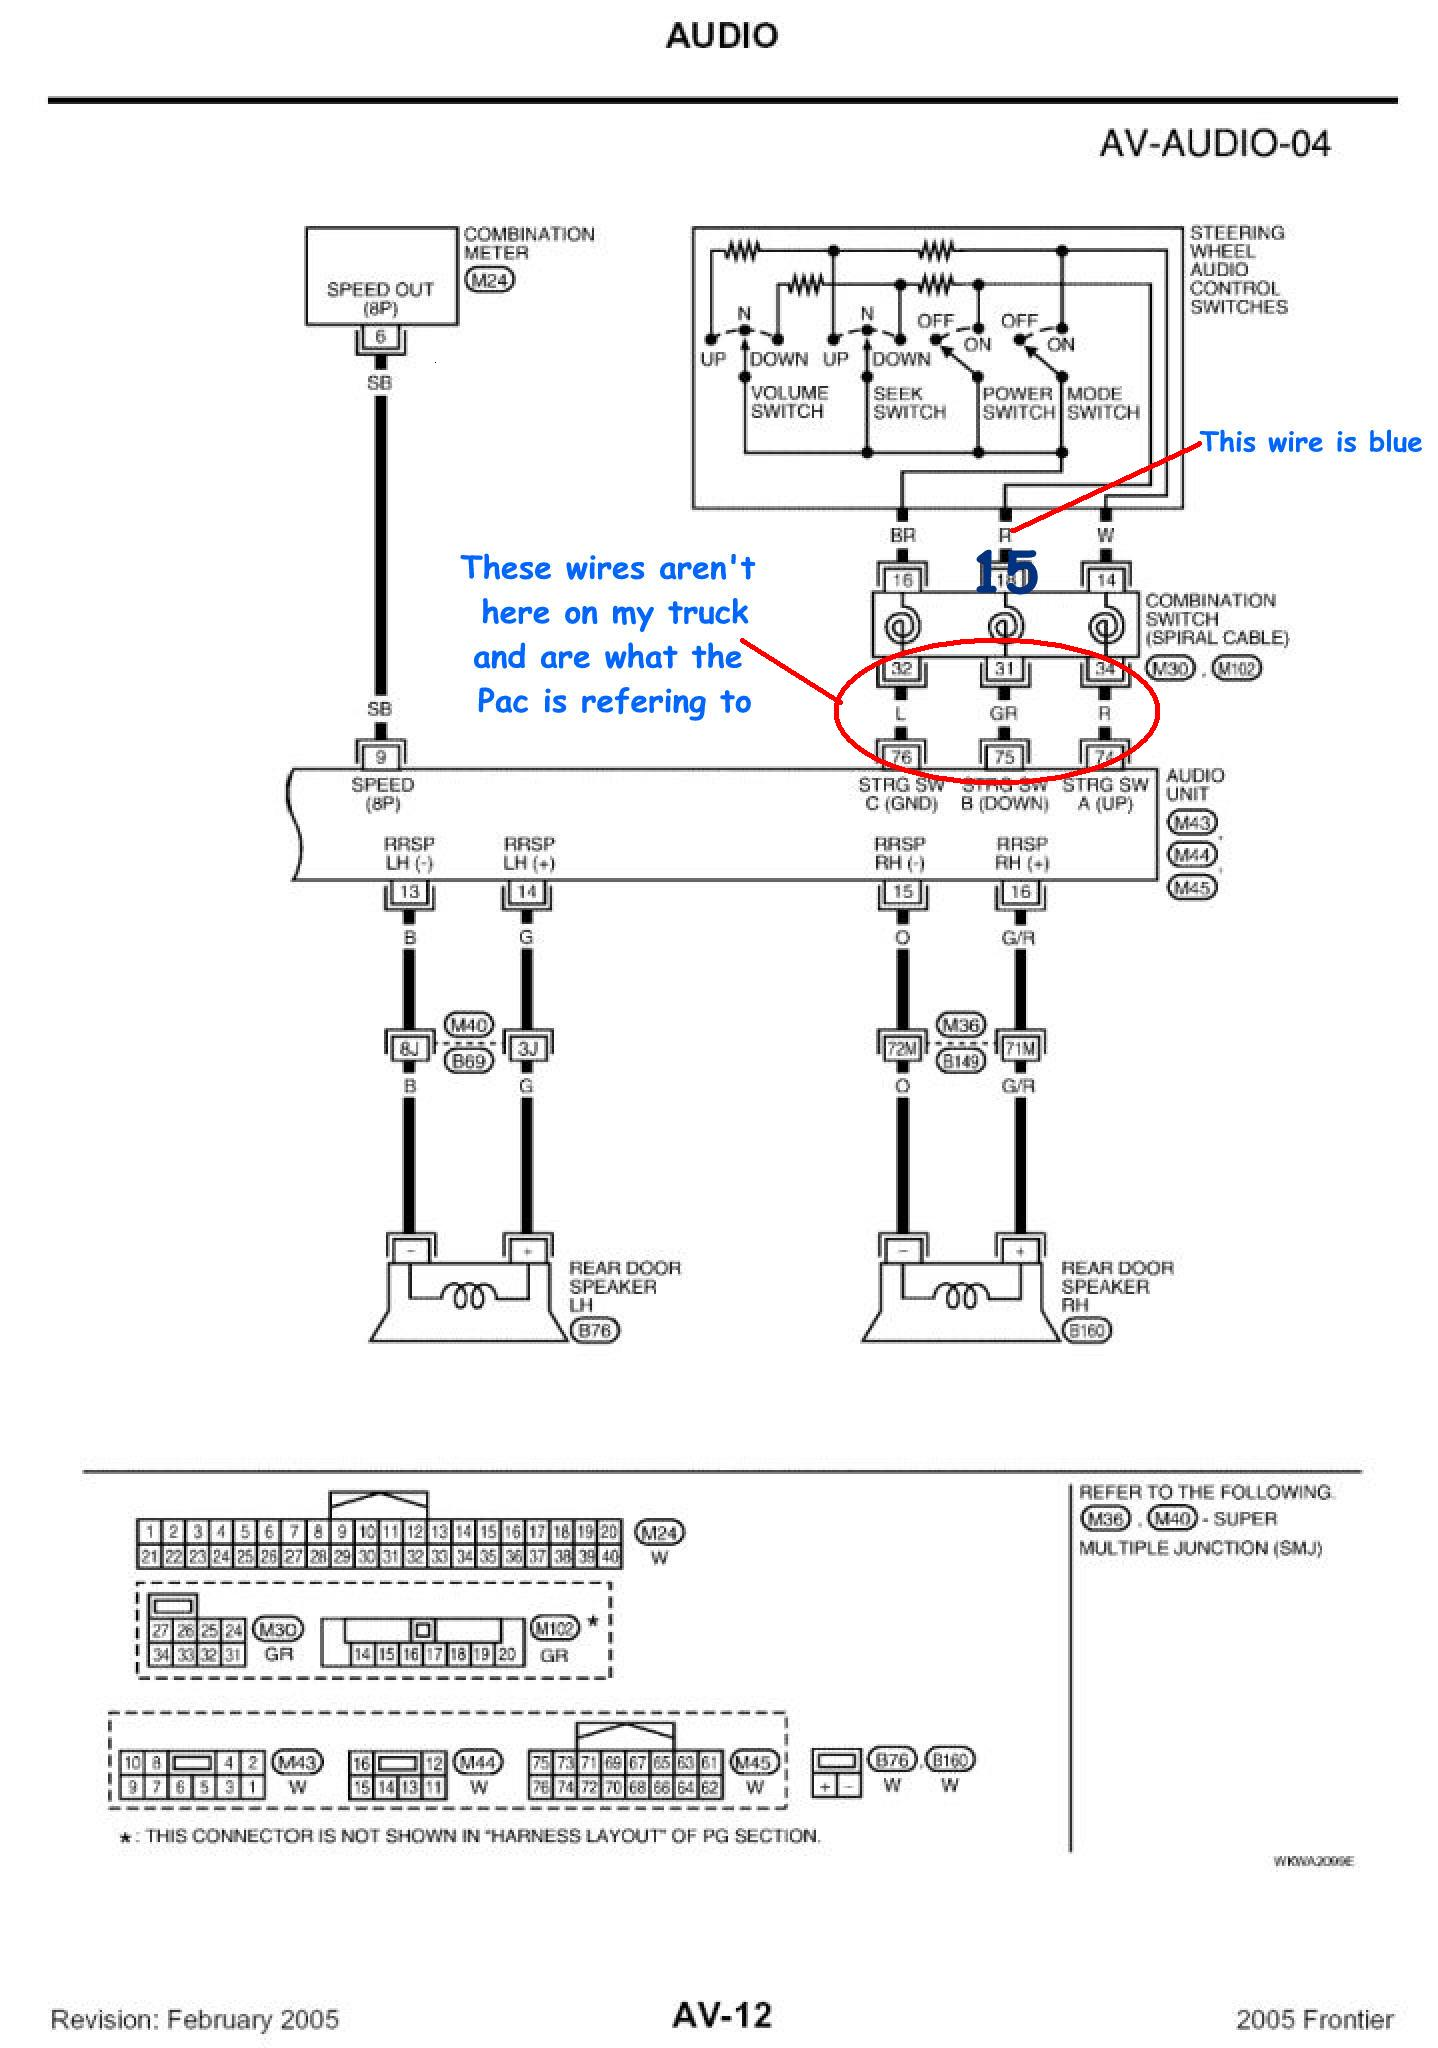 Dodge Sprinter Radio Wiring Harness Nissan Frontier Steering Wheel Control Diagram Pics Page 3 Forum Rh Clubfrontier Org Bmw 325i